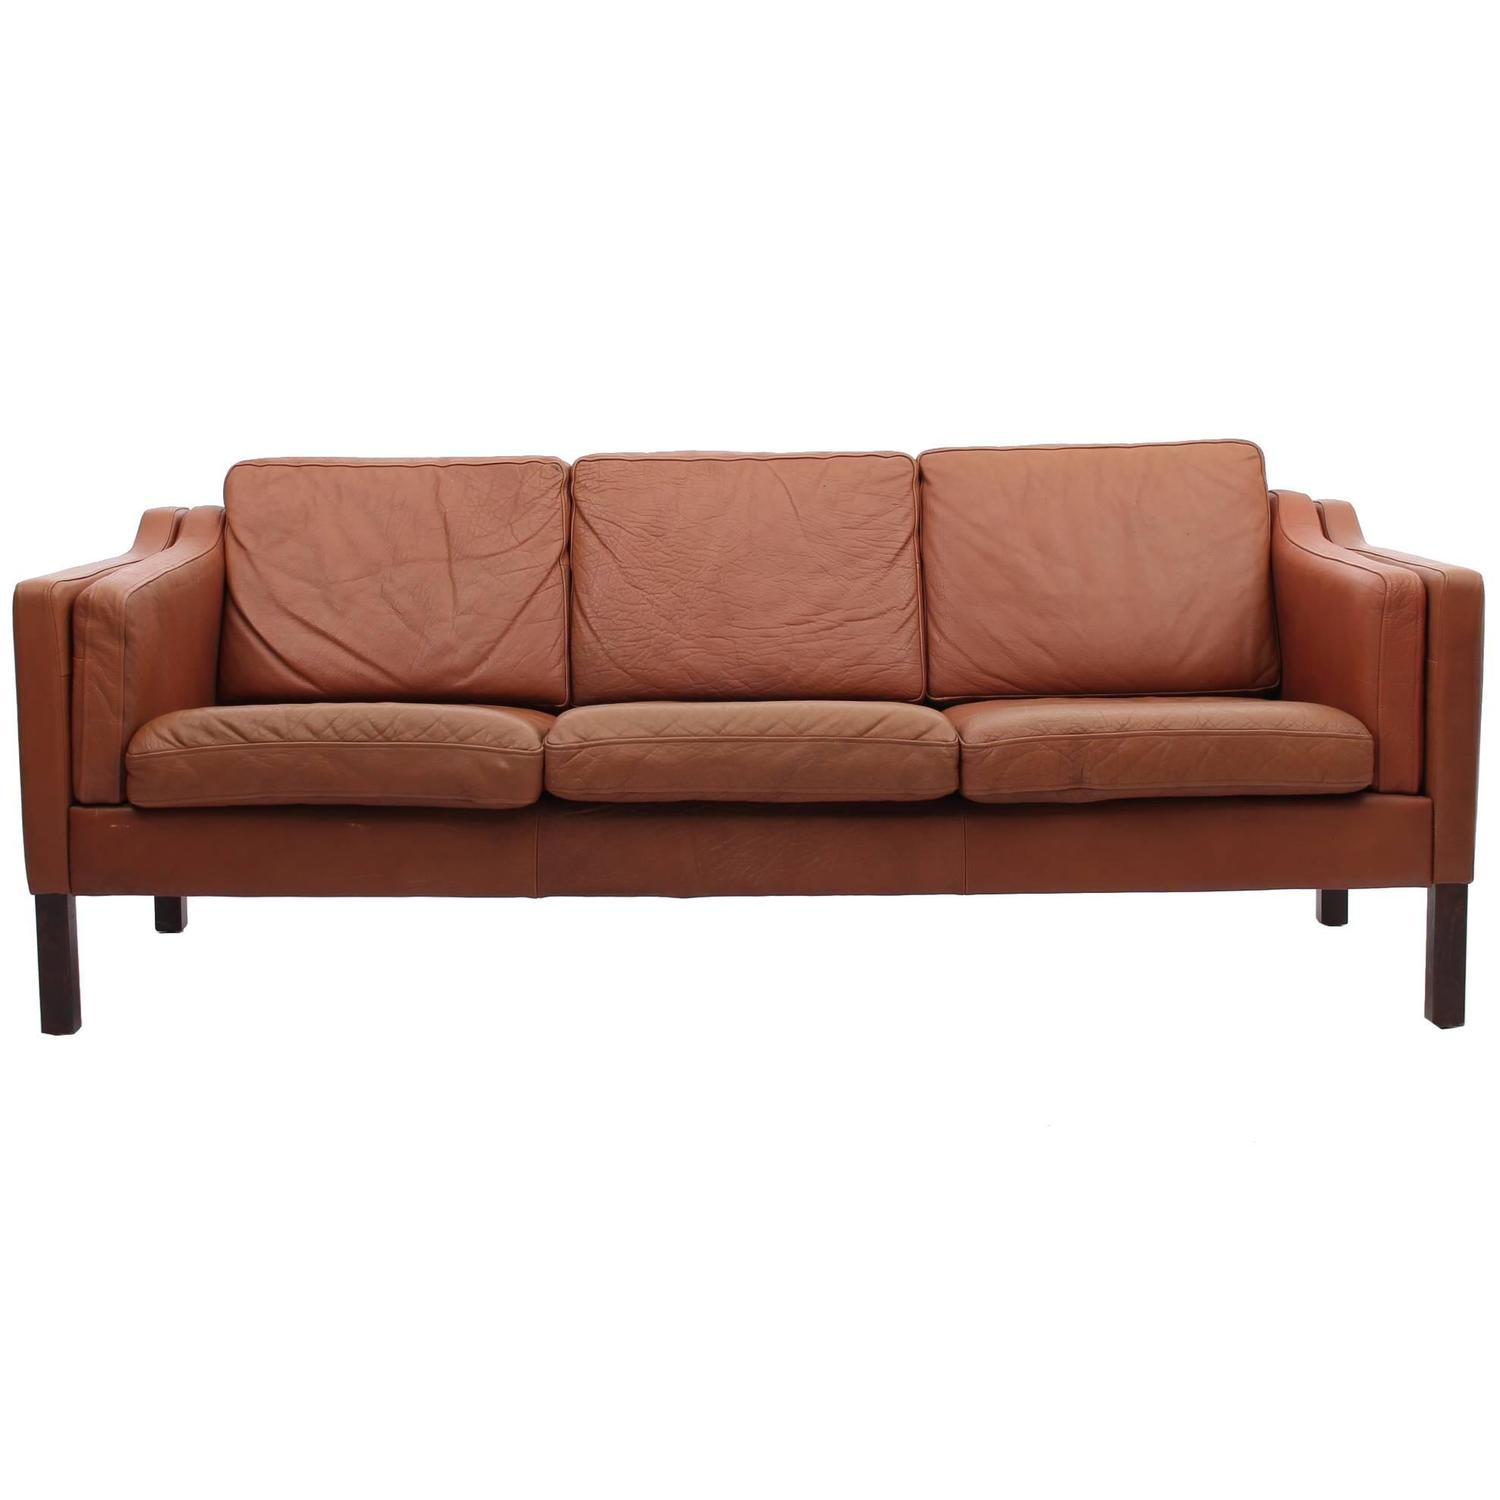 chestnut colored leather sofa palliser miami review brown danish mid century modern